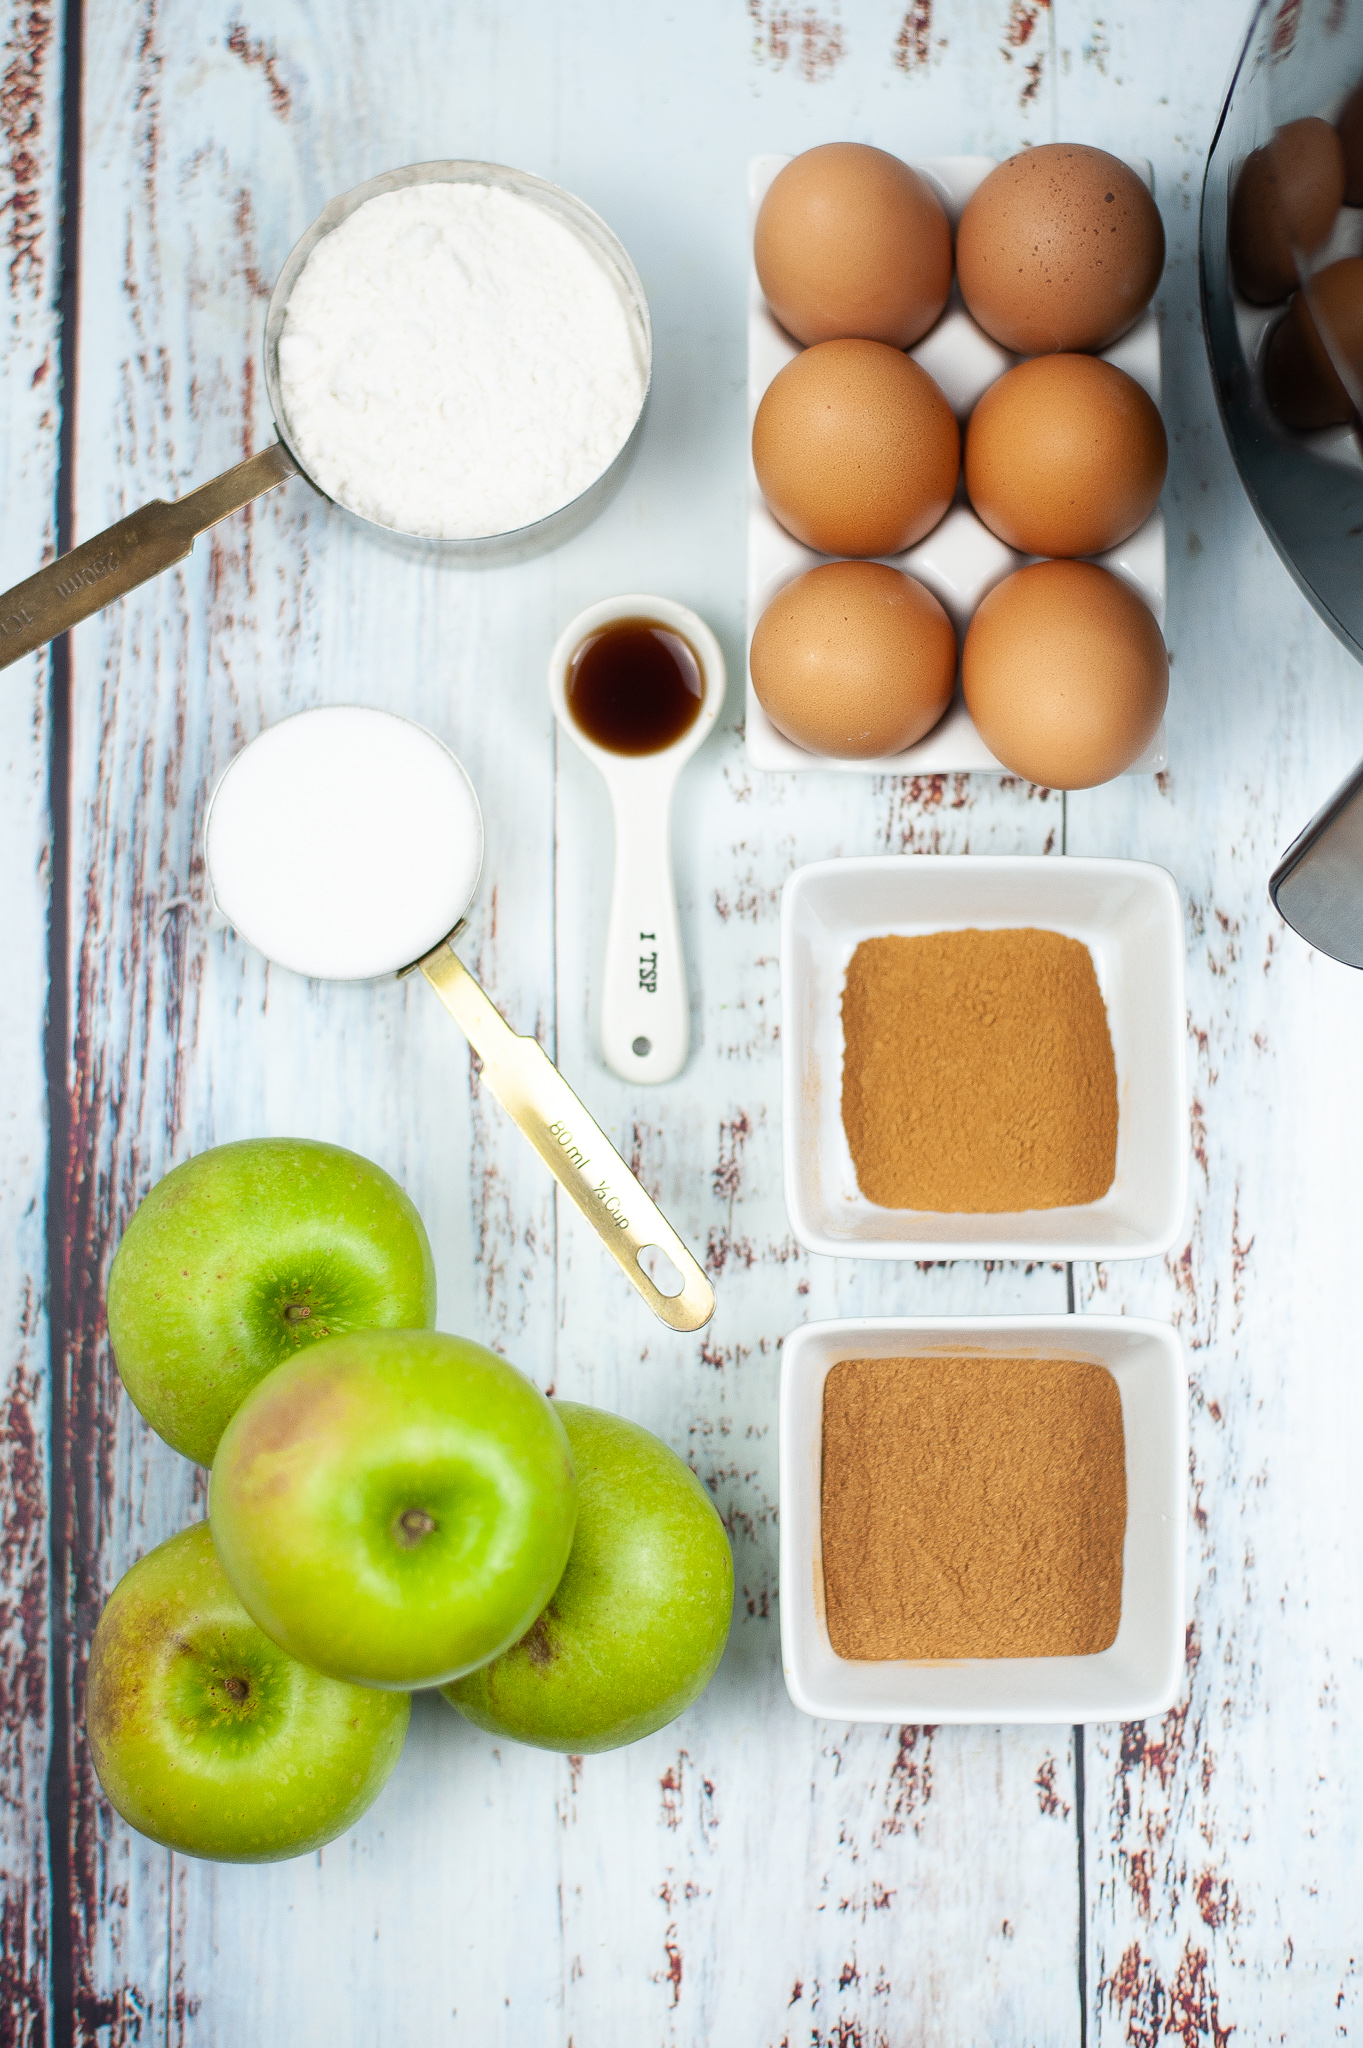 The aples, eggs, spices, flour and vanilla needed to make Pumpkin Spice Air Fried Apples.